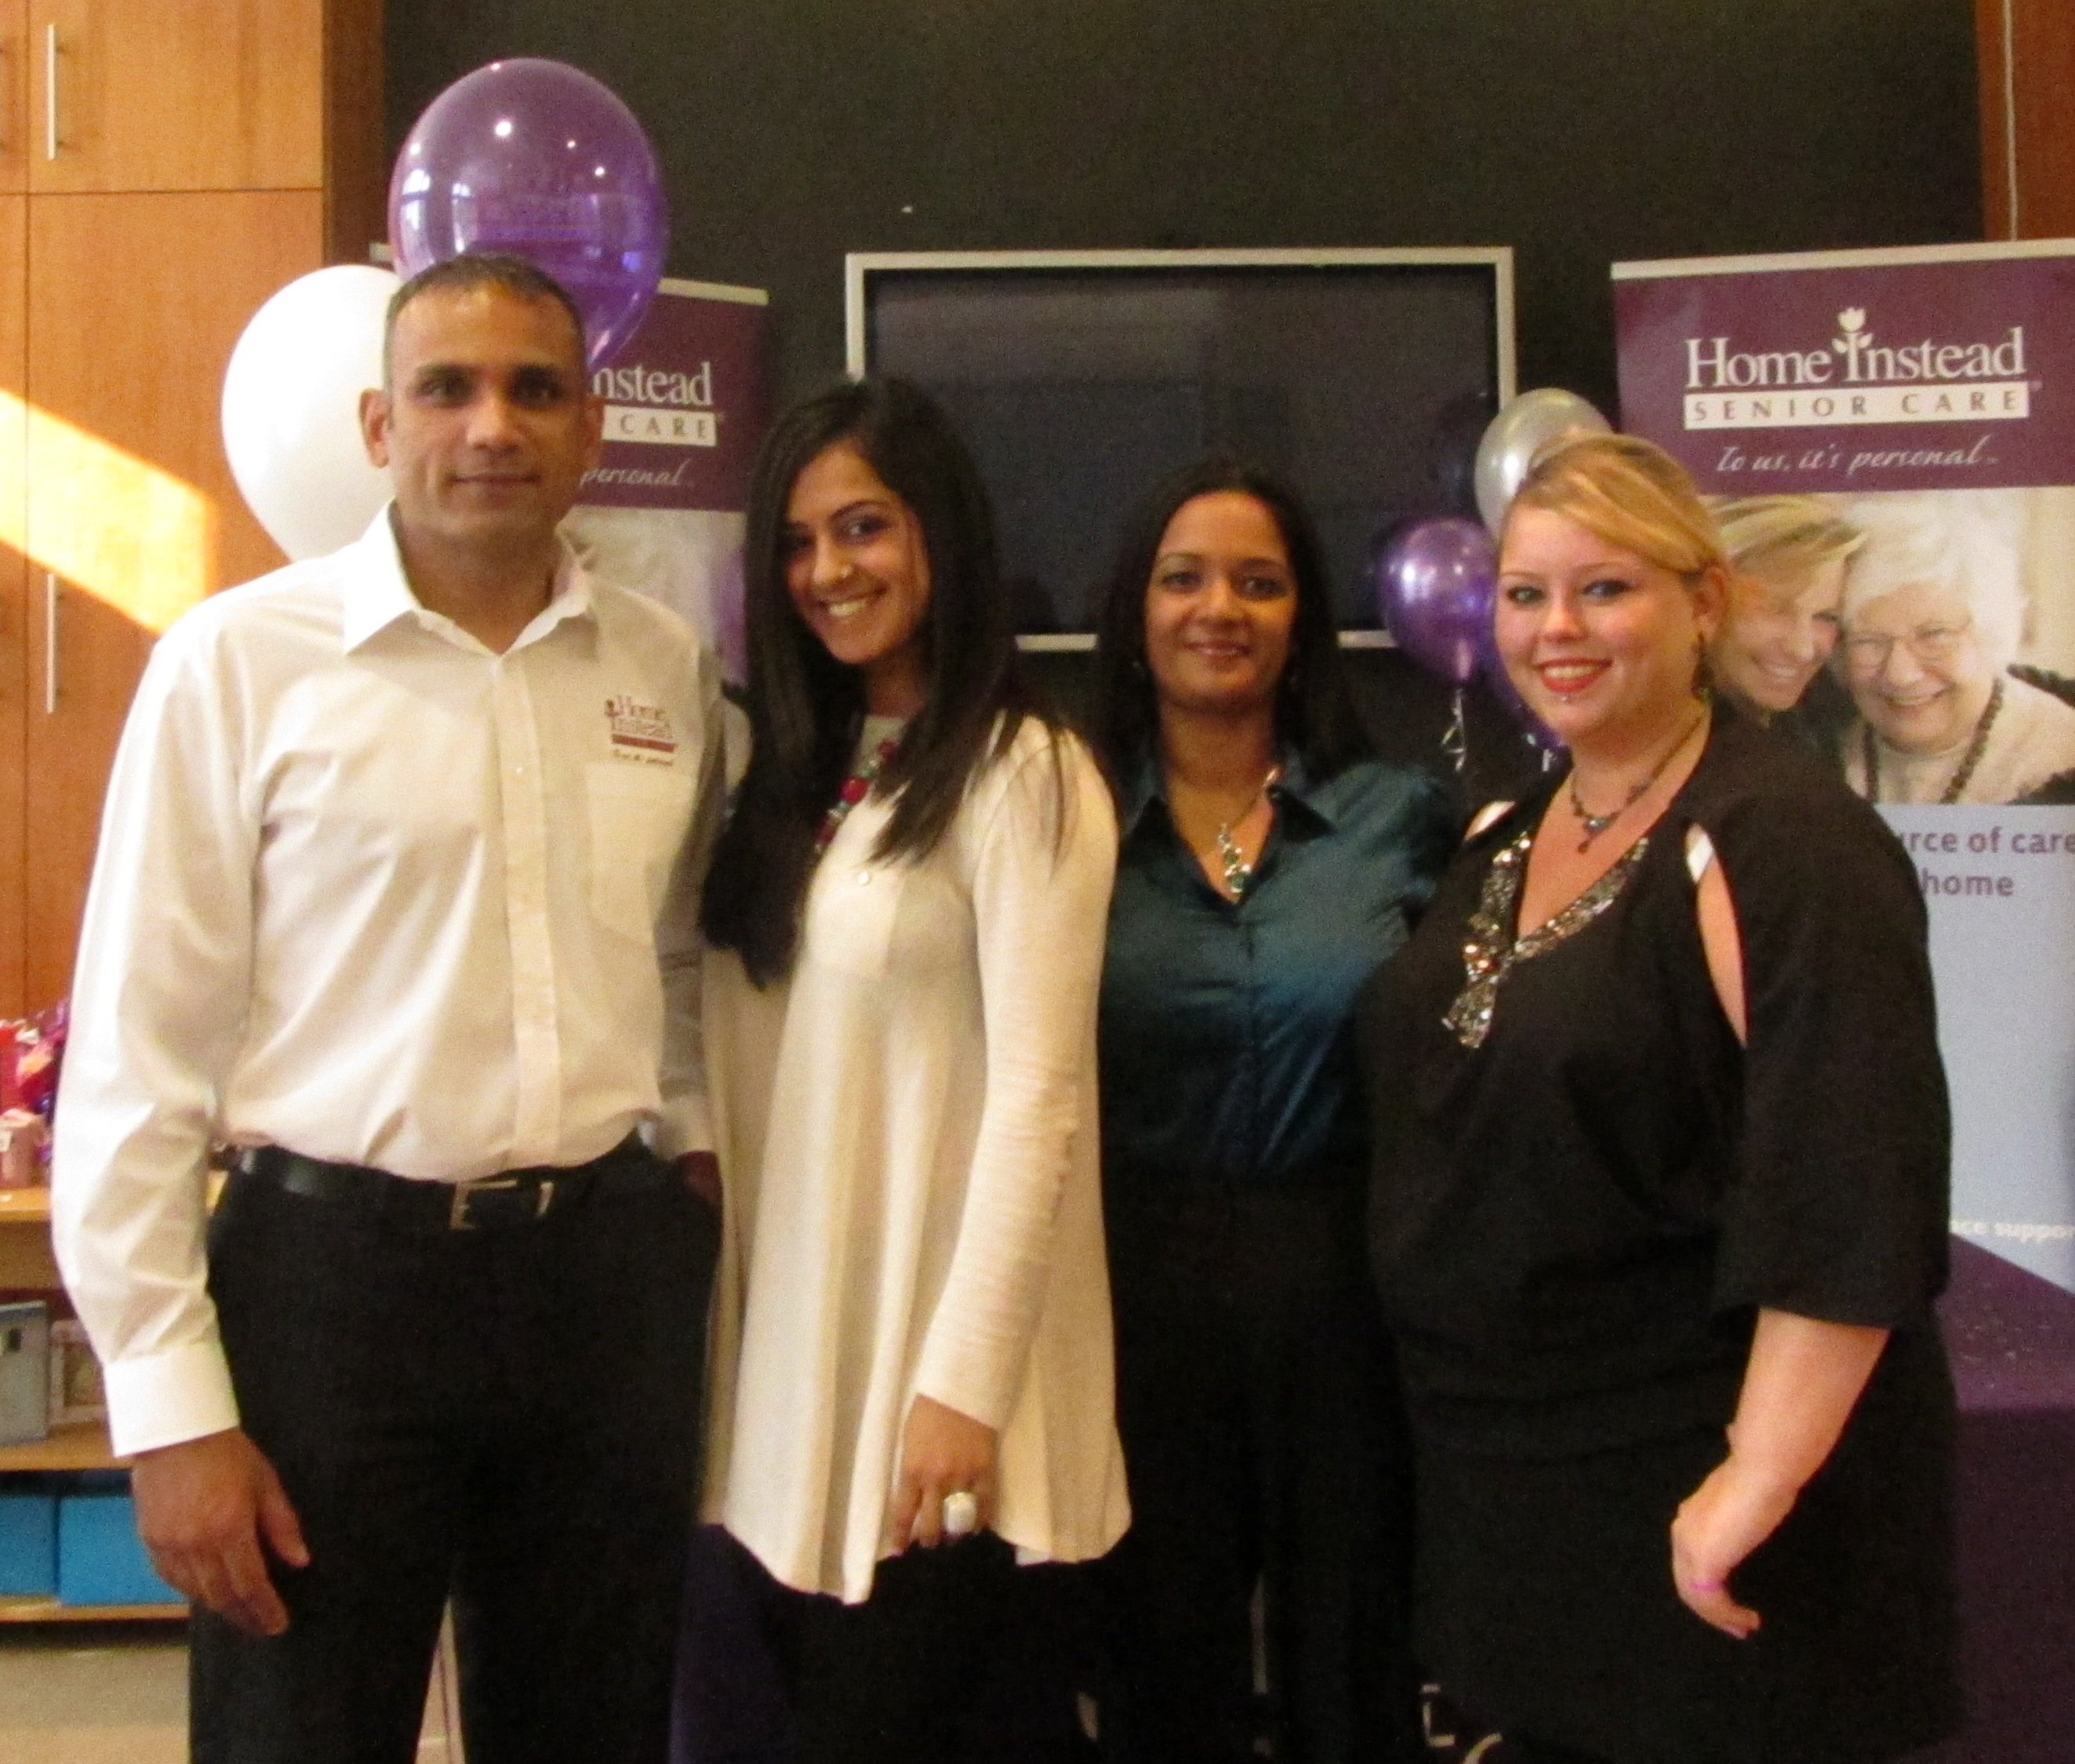 Home Instead Ealing owner Tony Hussein and team members at the company's open day